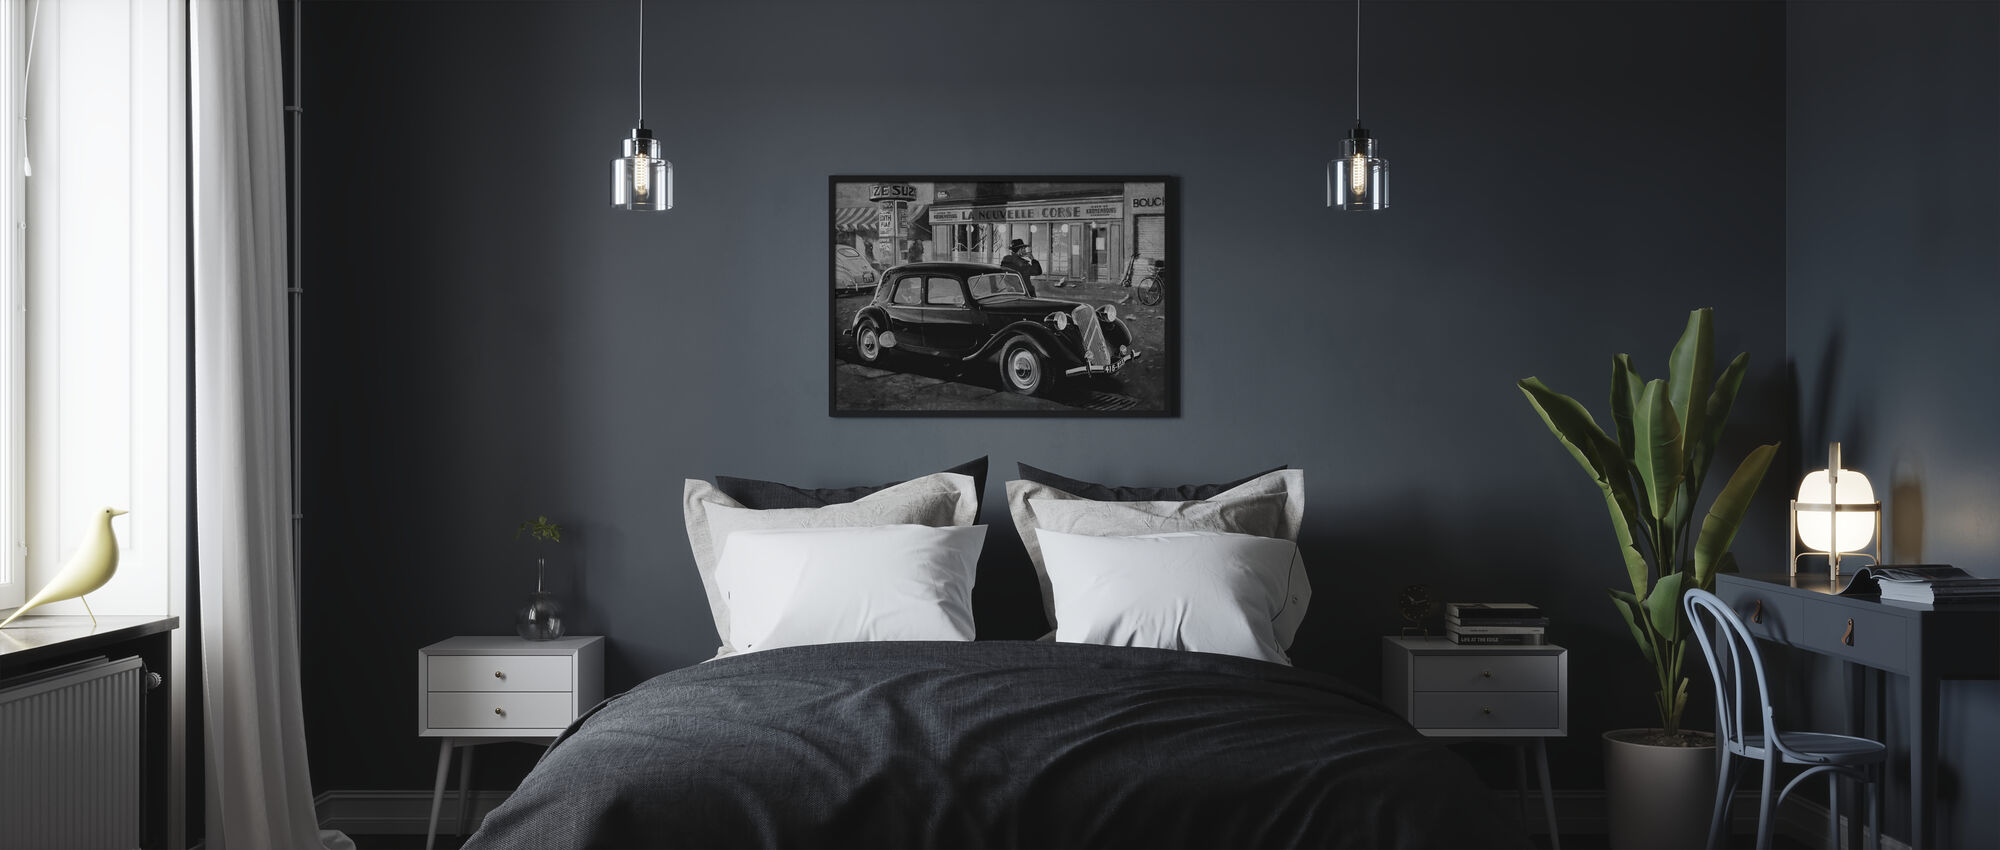 B15 in Paris BW - Poster - Schlafzimmer